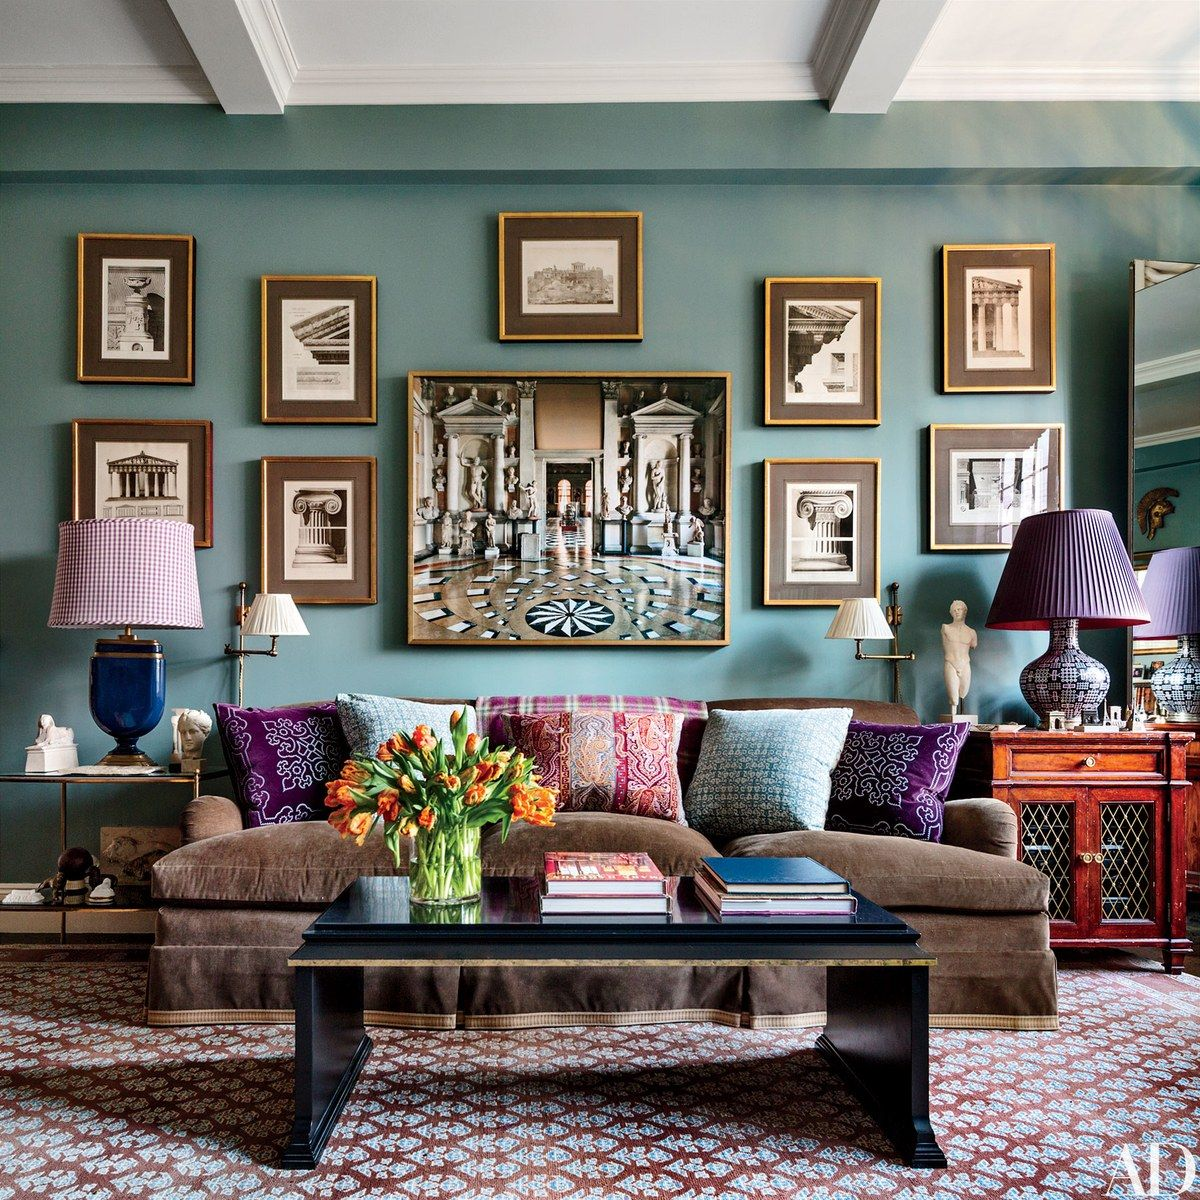 Best Blue Green Painted Room Inspiration Blue Green Rooms 640 x 480